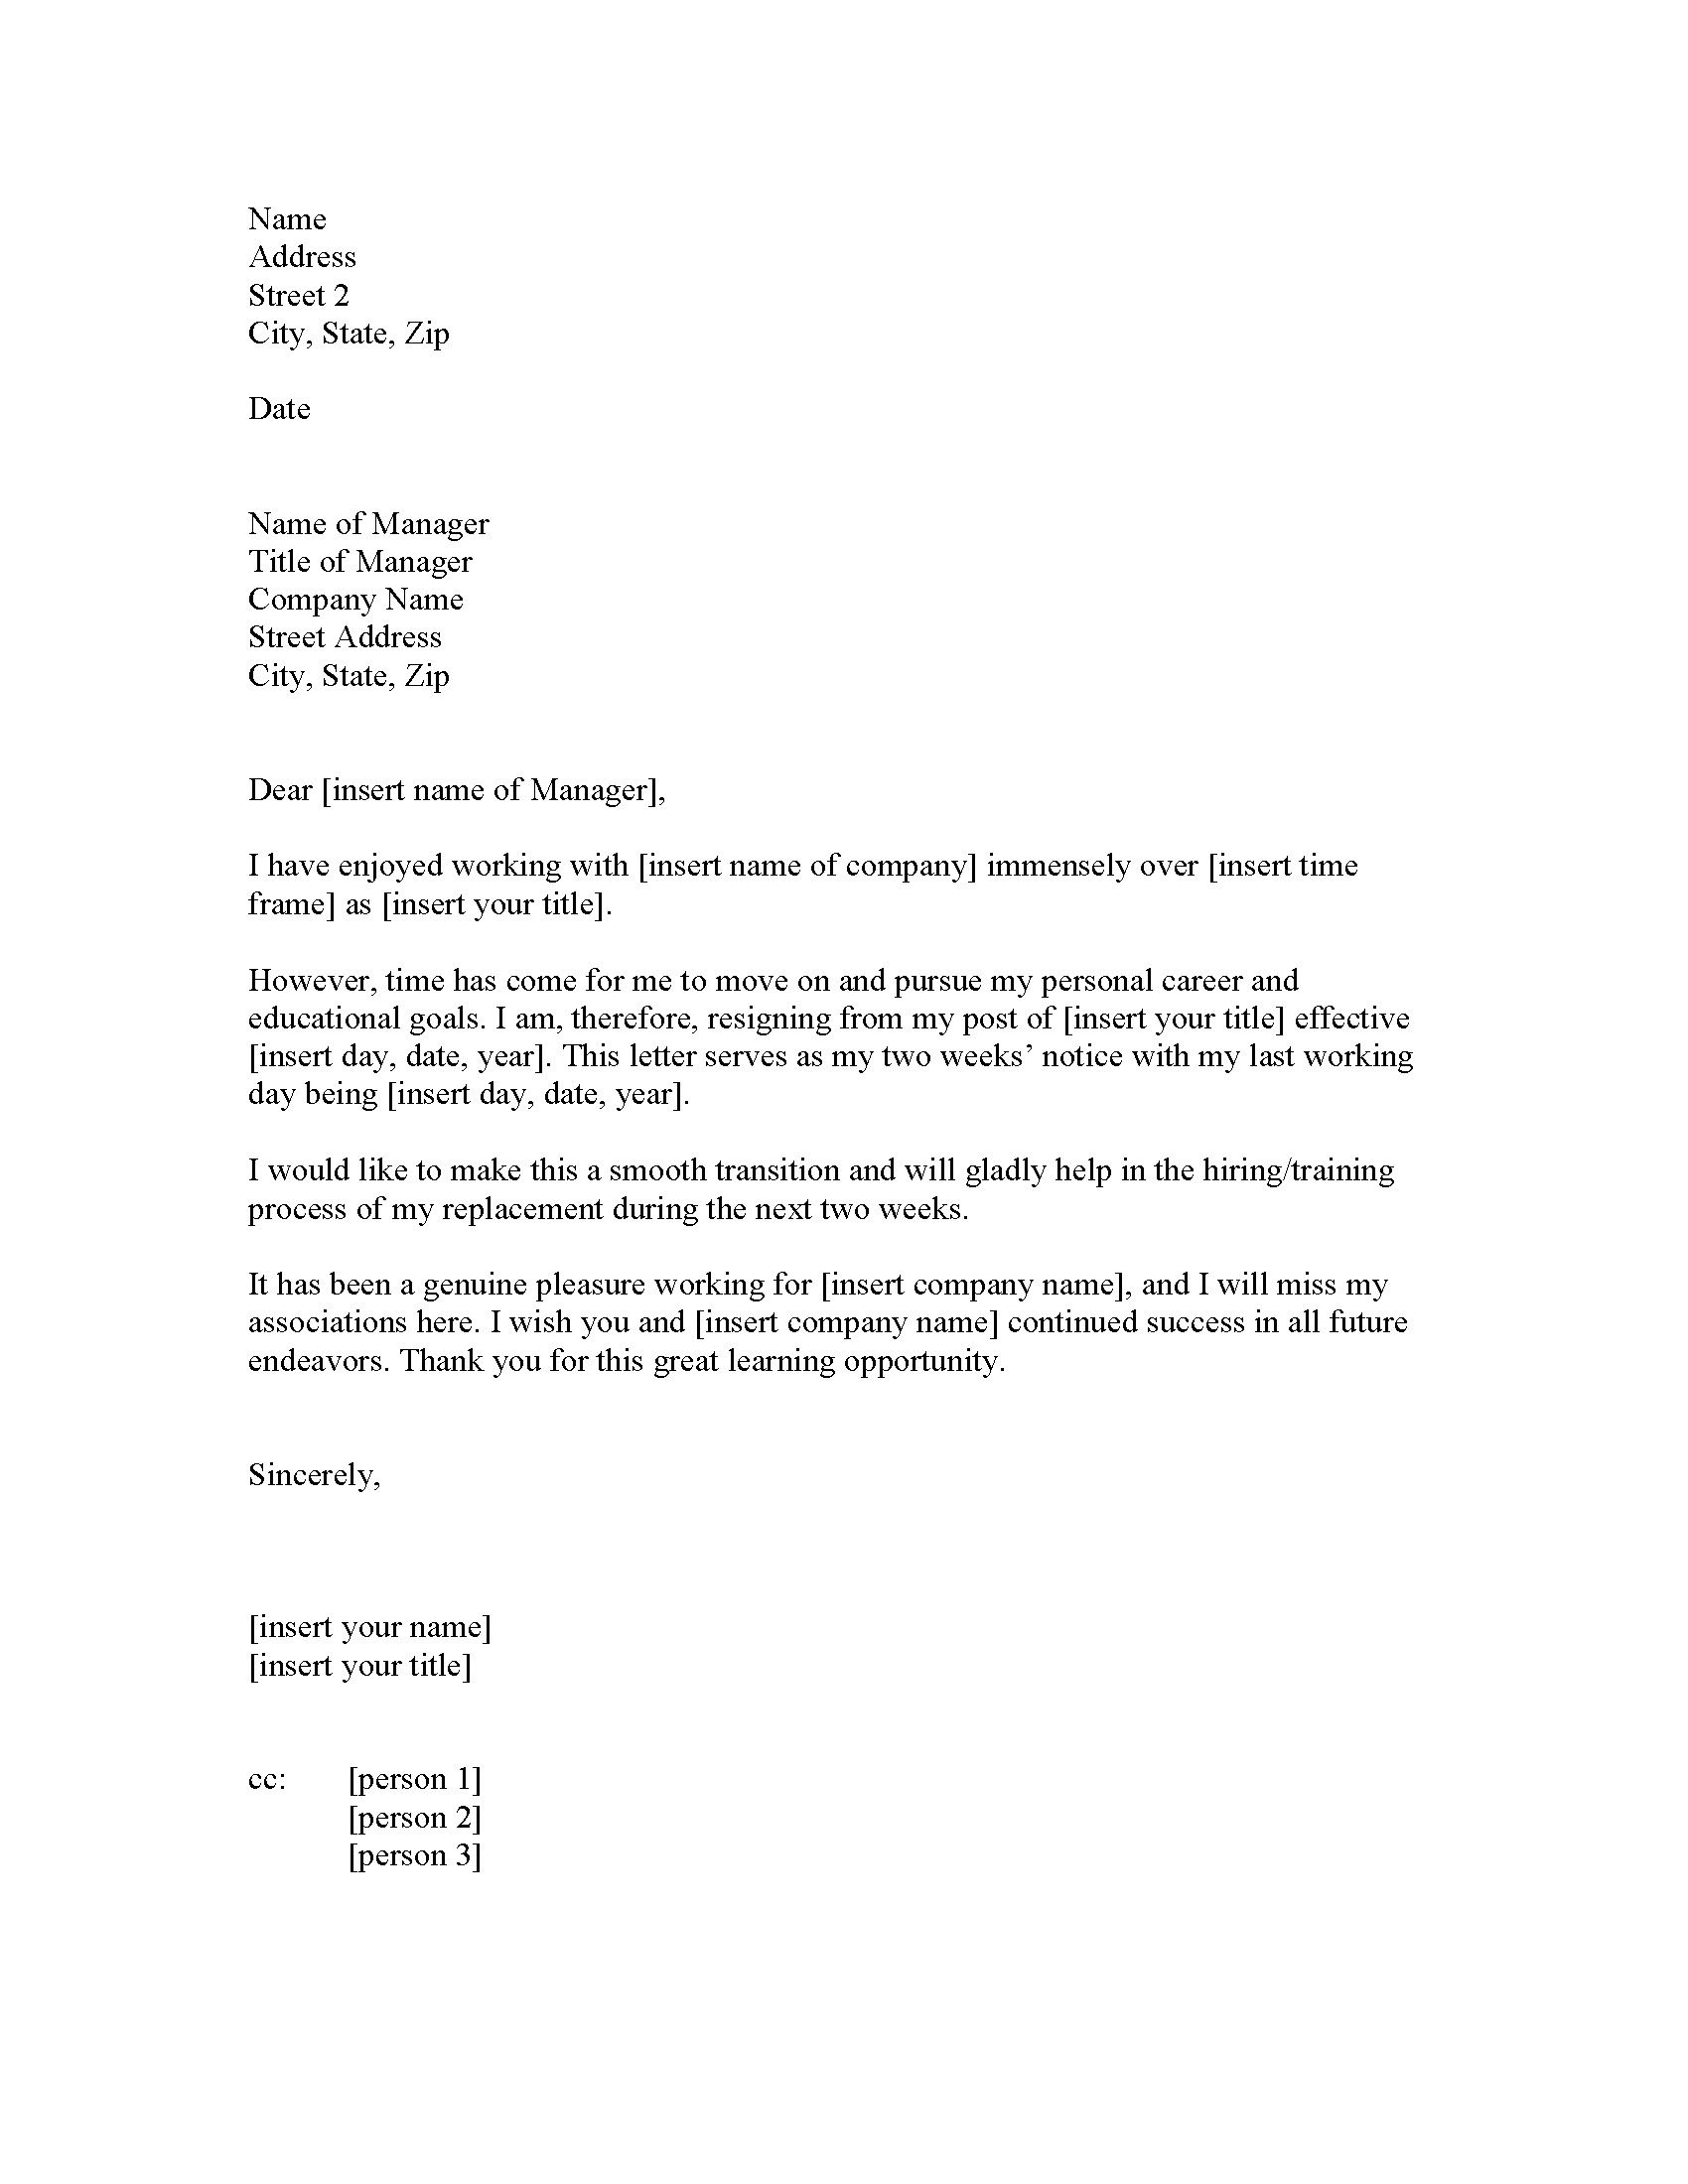 Two Week Resignation Letter Samples | Resignation Letter2 Resignation  Letters 101